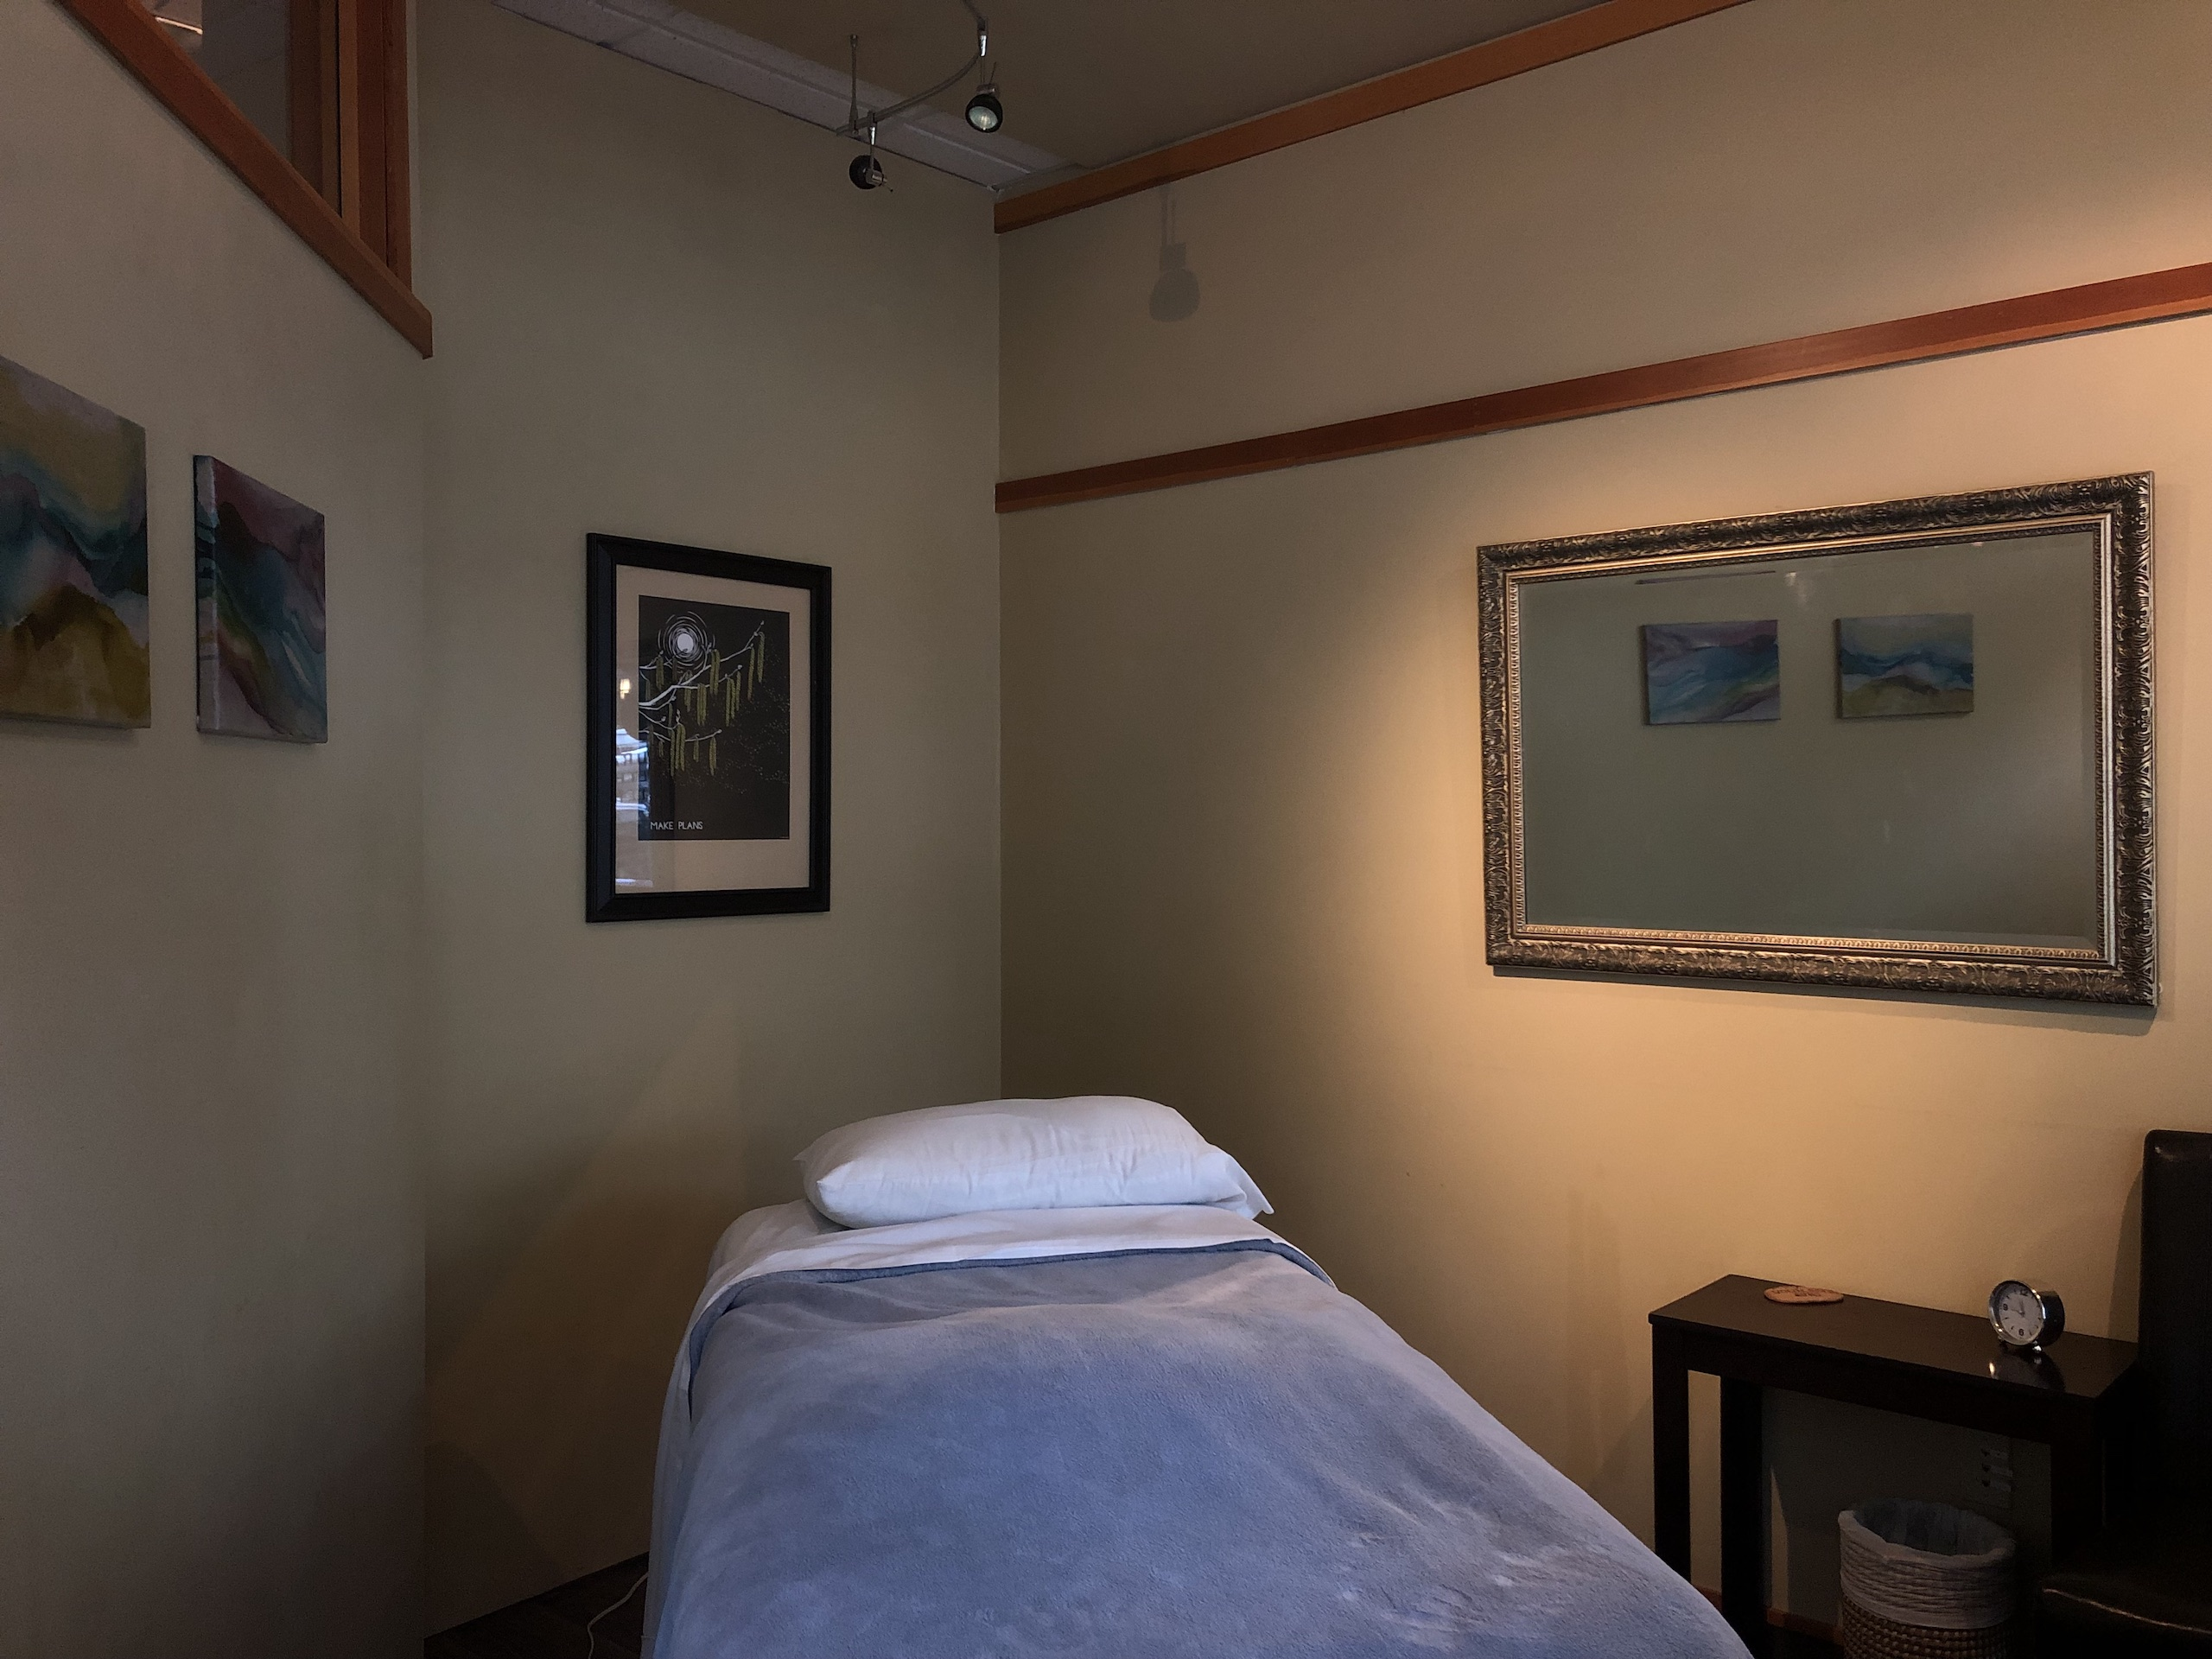 Long view of massage room with table